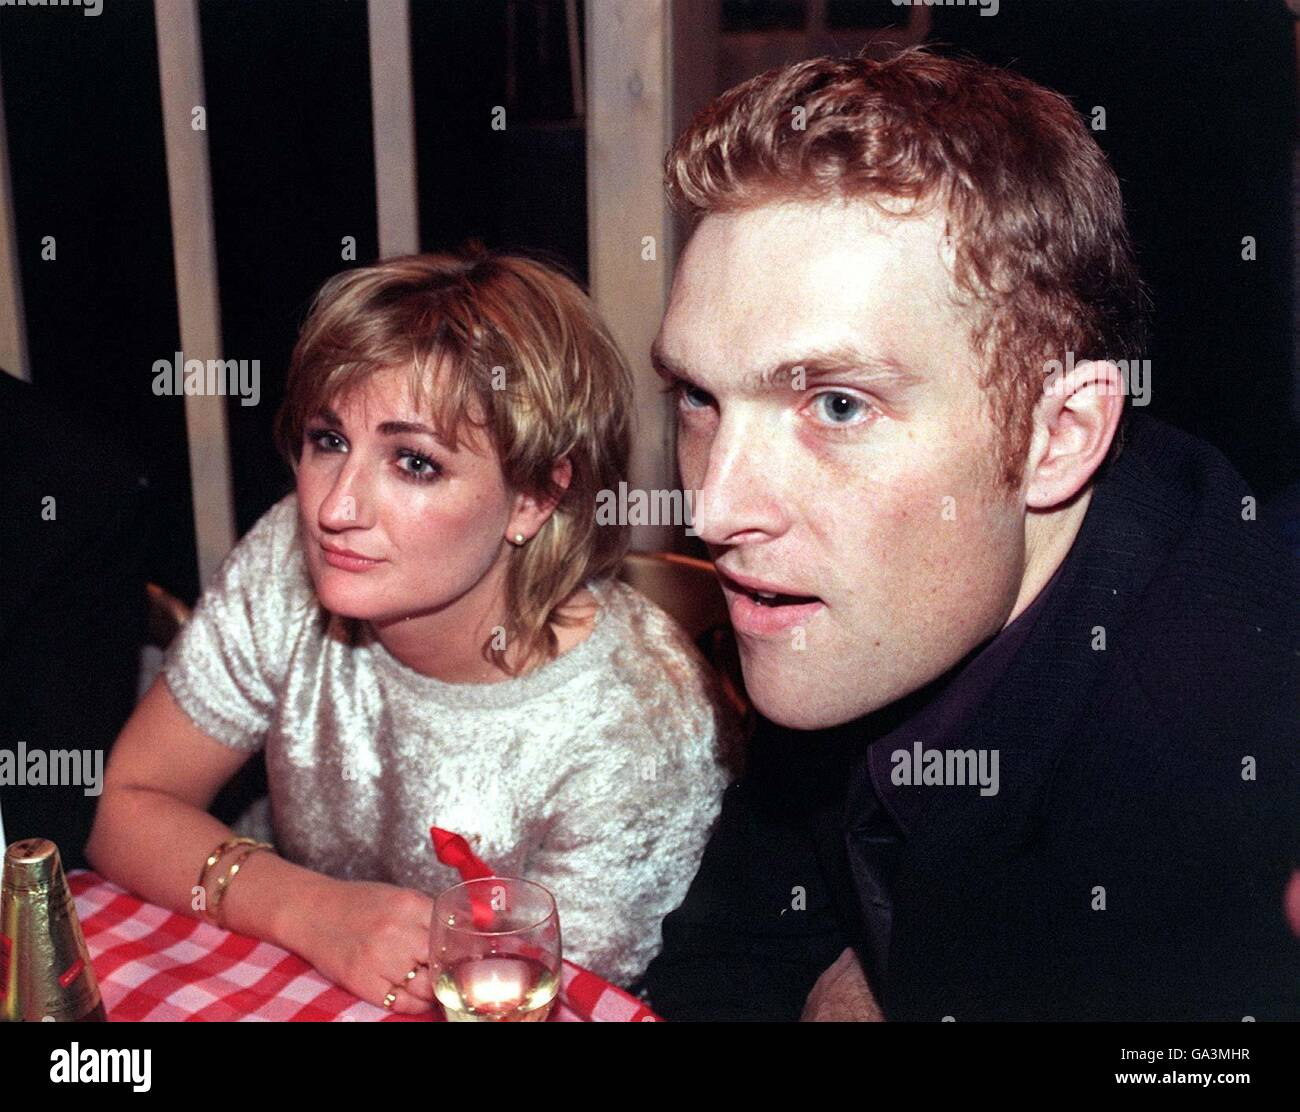 File photo dated 10/04/1997 of Caroline Aherne and her then boyfriend Matt Bowers at the British Comedy Awards, - Stock Image